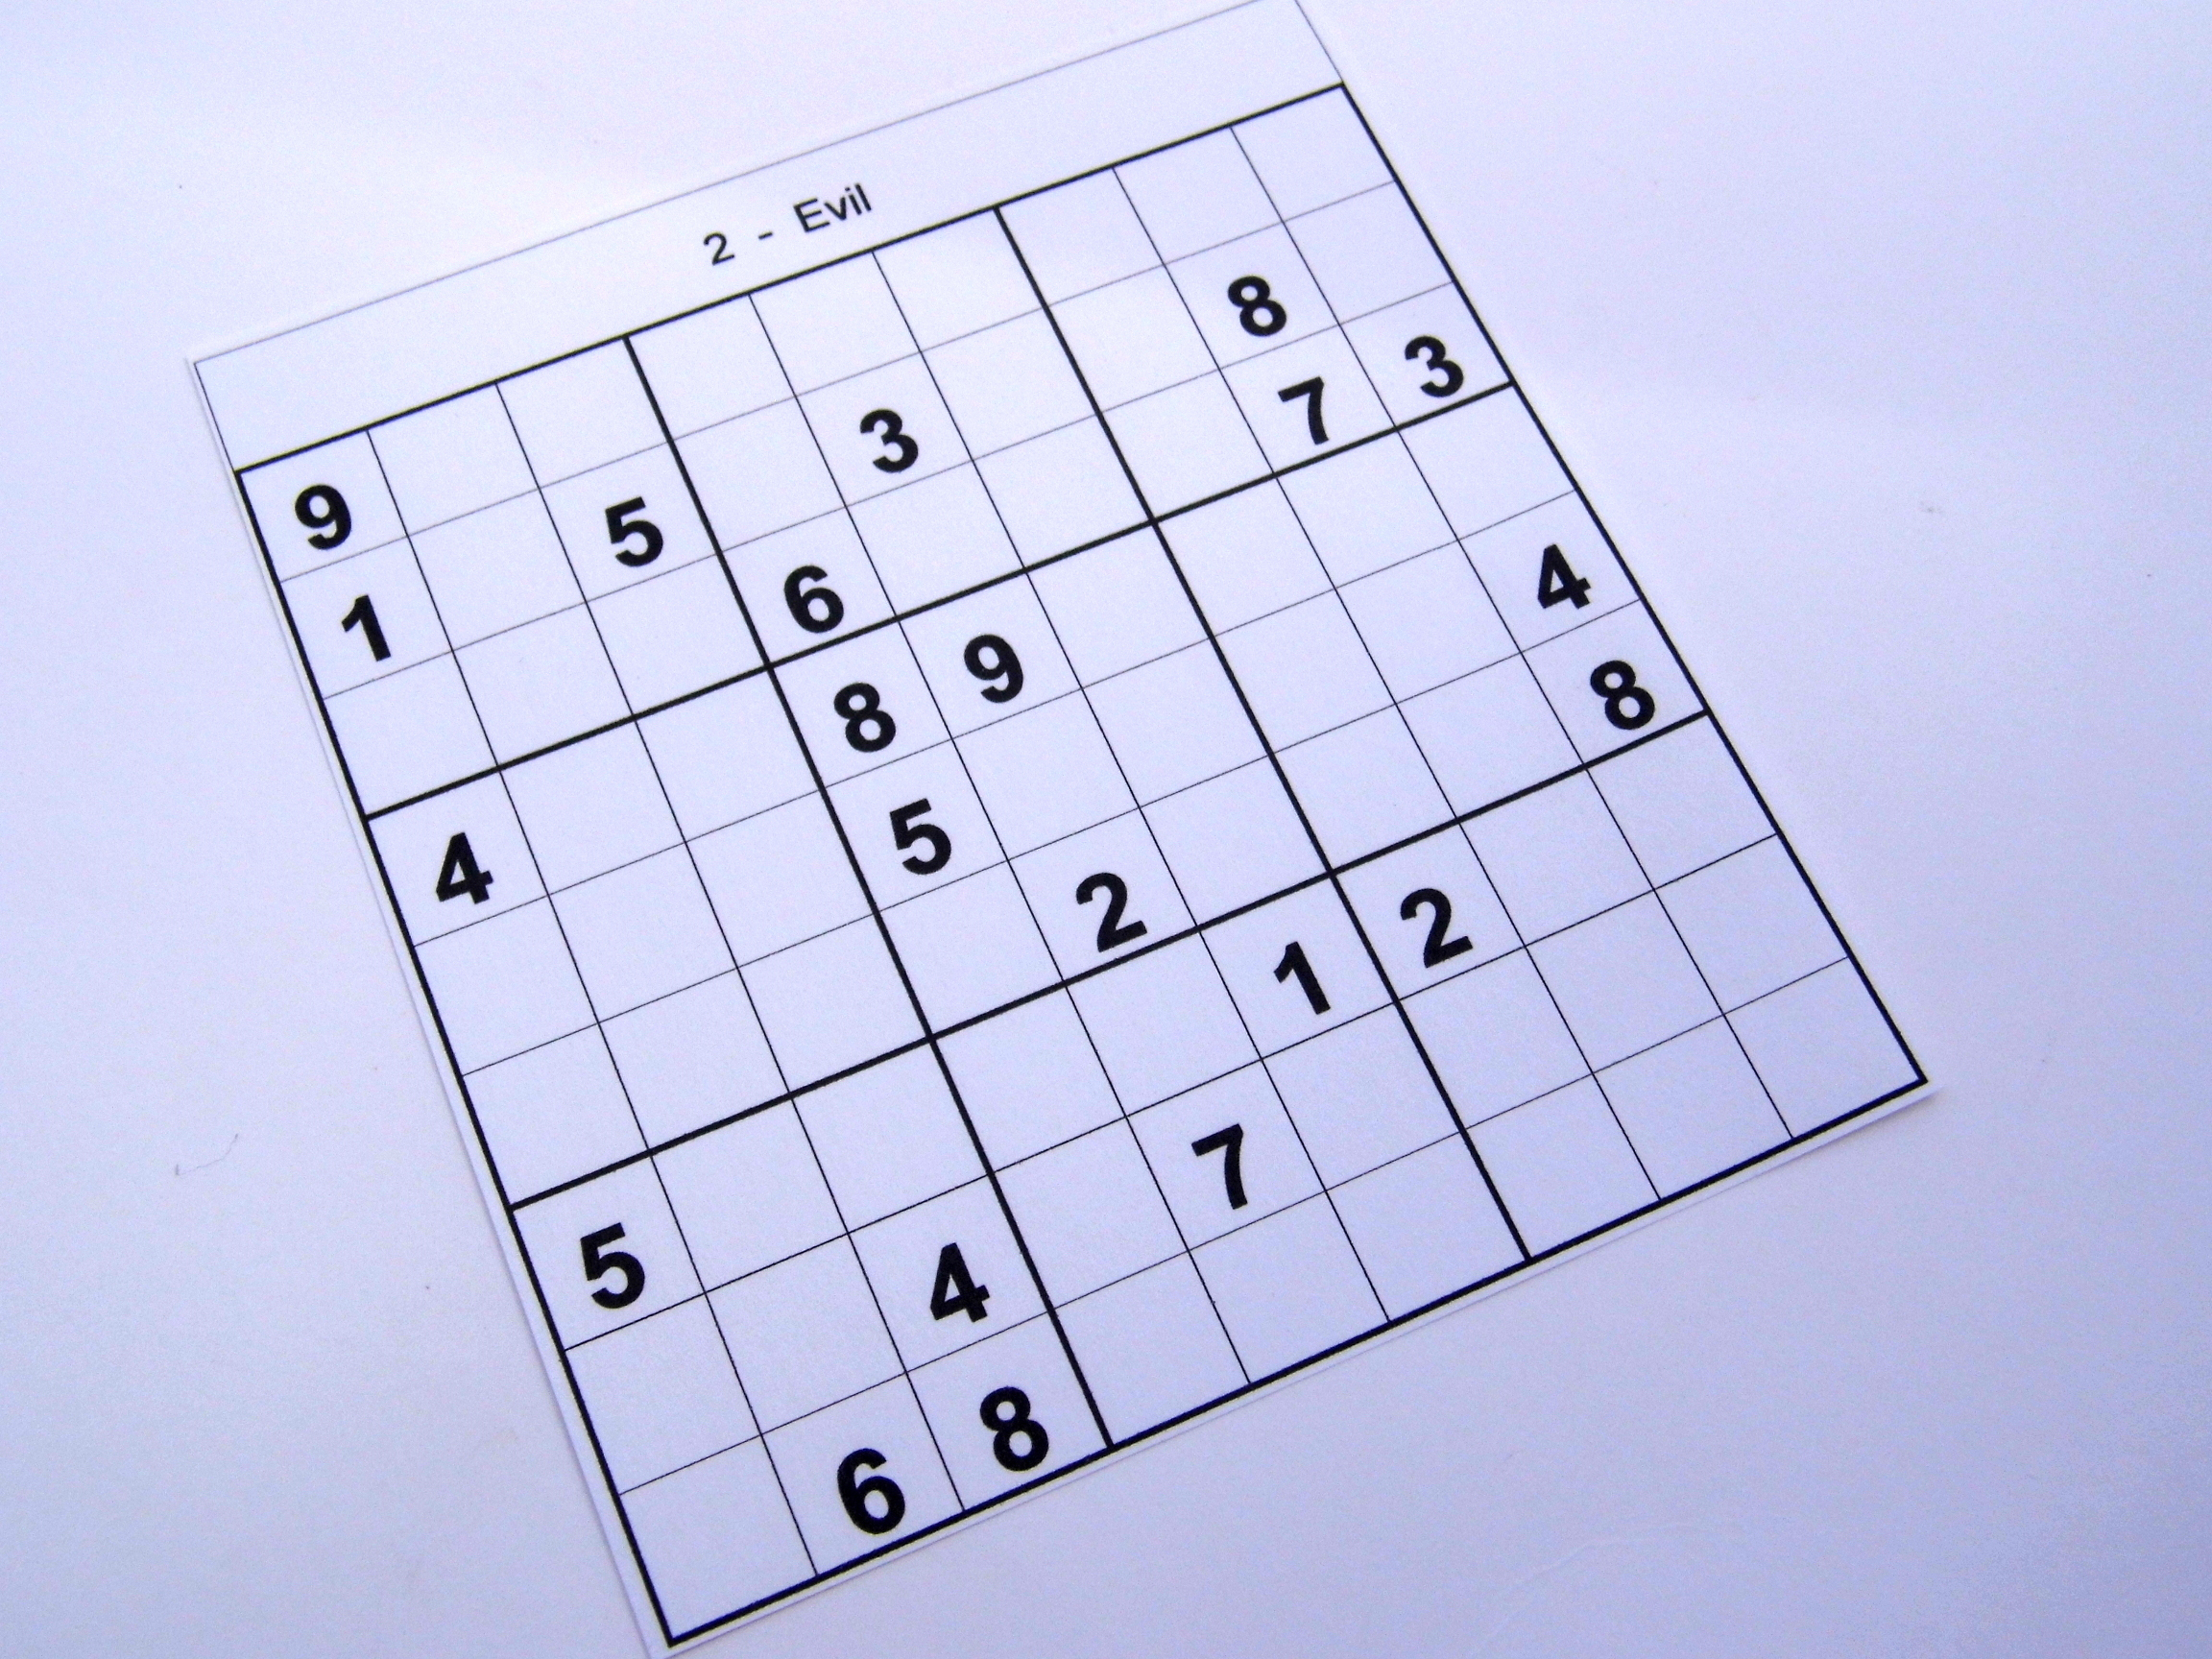 Archive Evil Puzzles – Free Sudoku Puzzles - Free Printable Sudoku 6 - Printable Sudoku Puzzles 2 Per Page